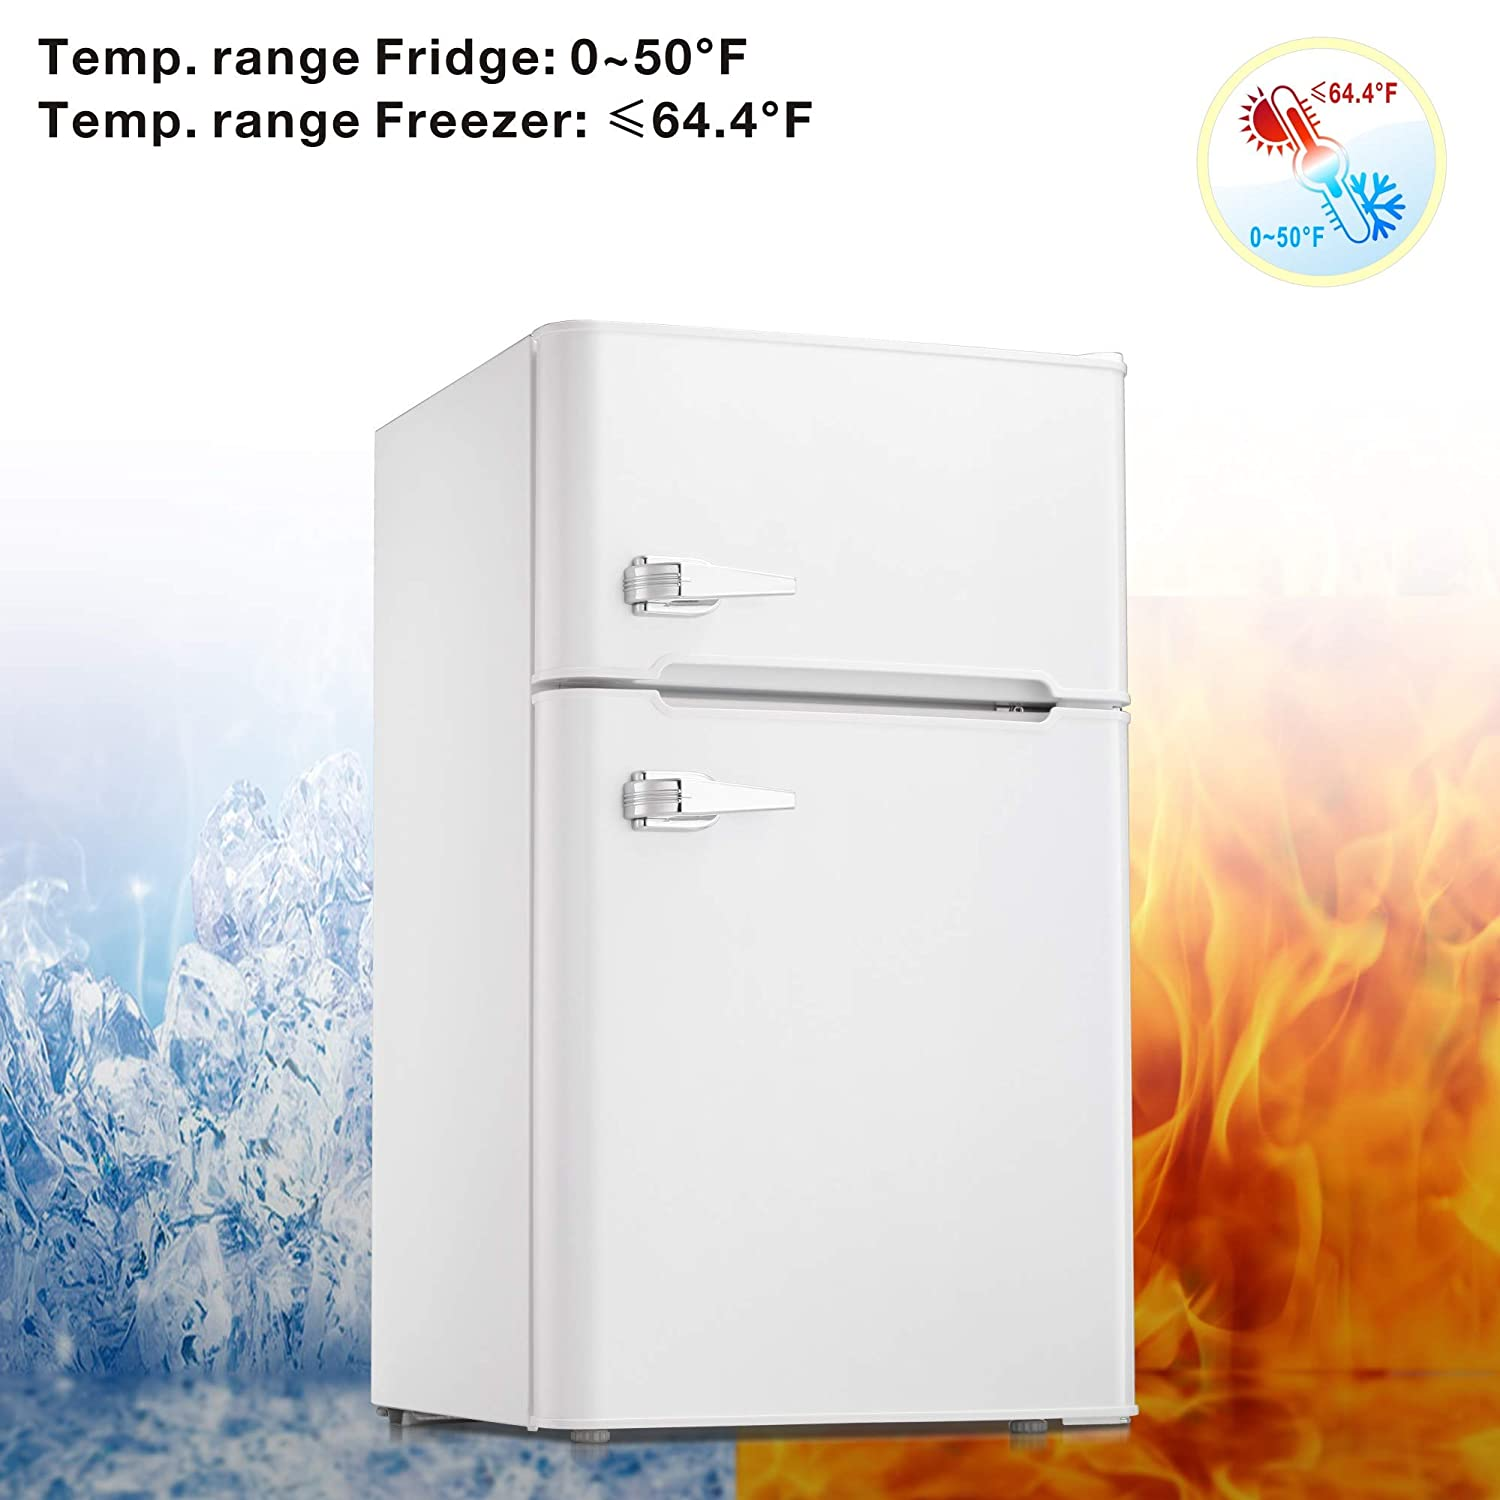 White Portable Single Door Refrigerator with Freezer Compartment Home and Office AGLUCKY Compact Refrigerator 1.62 cuft